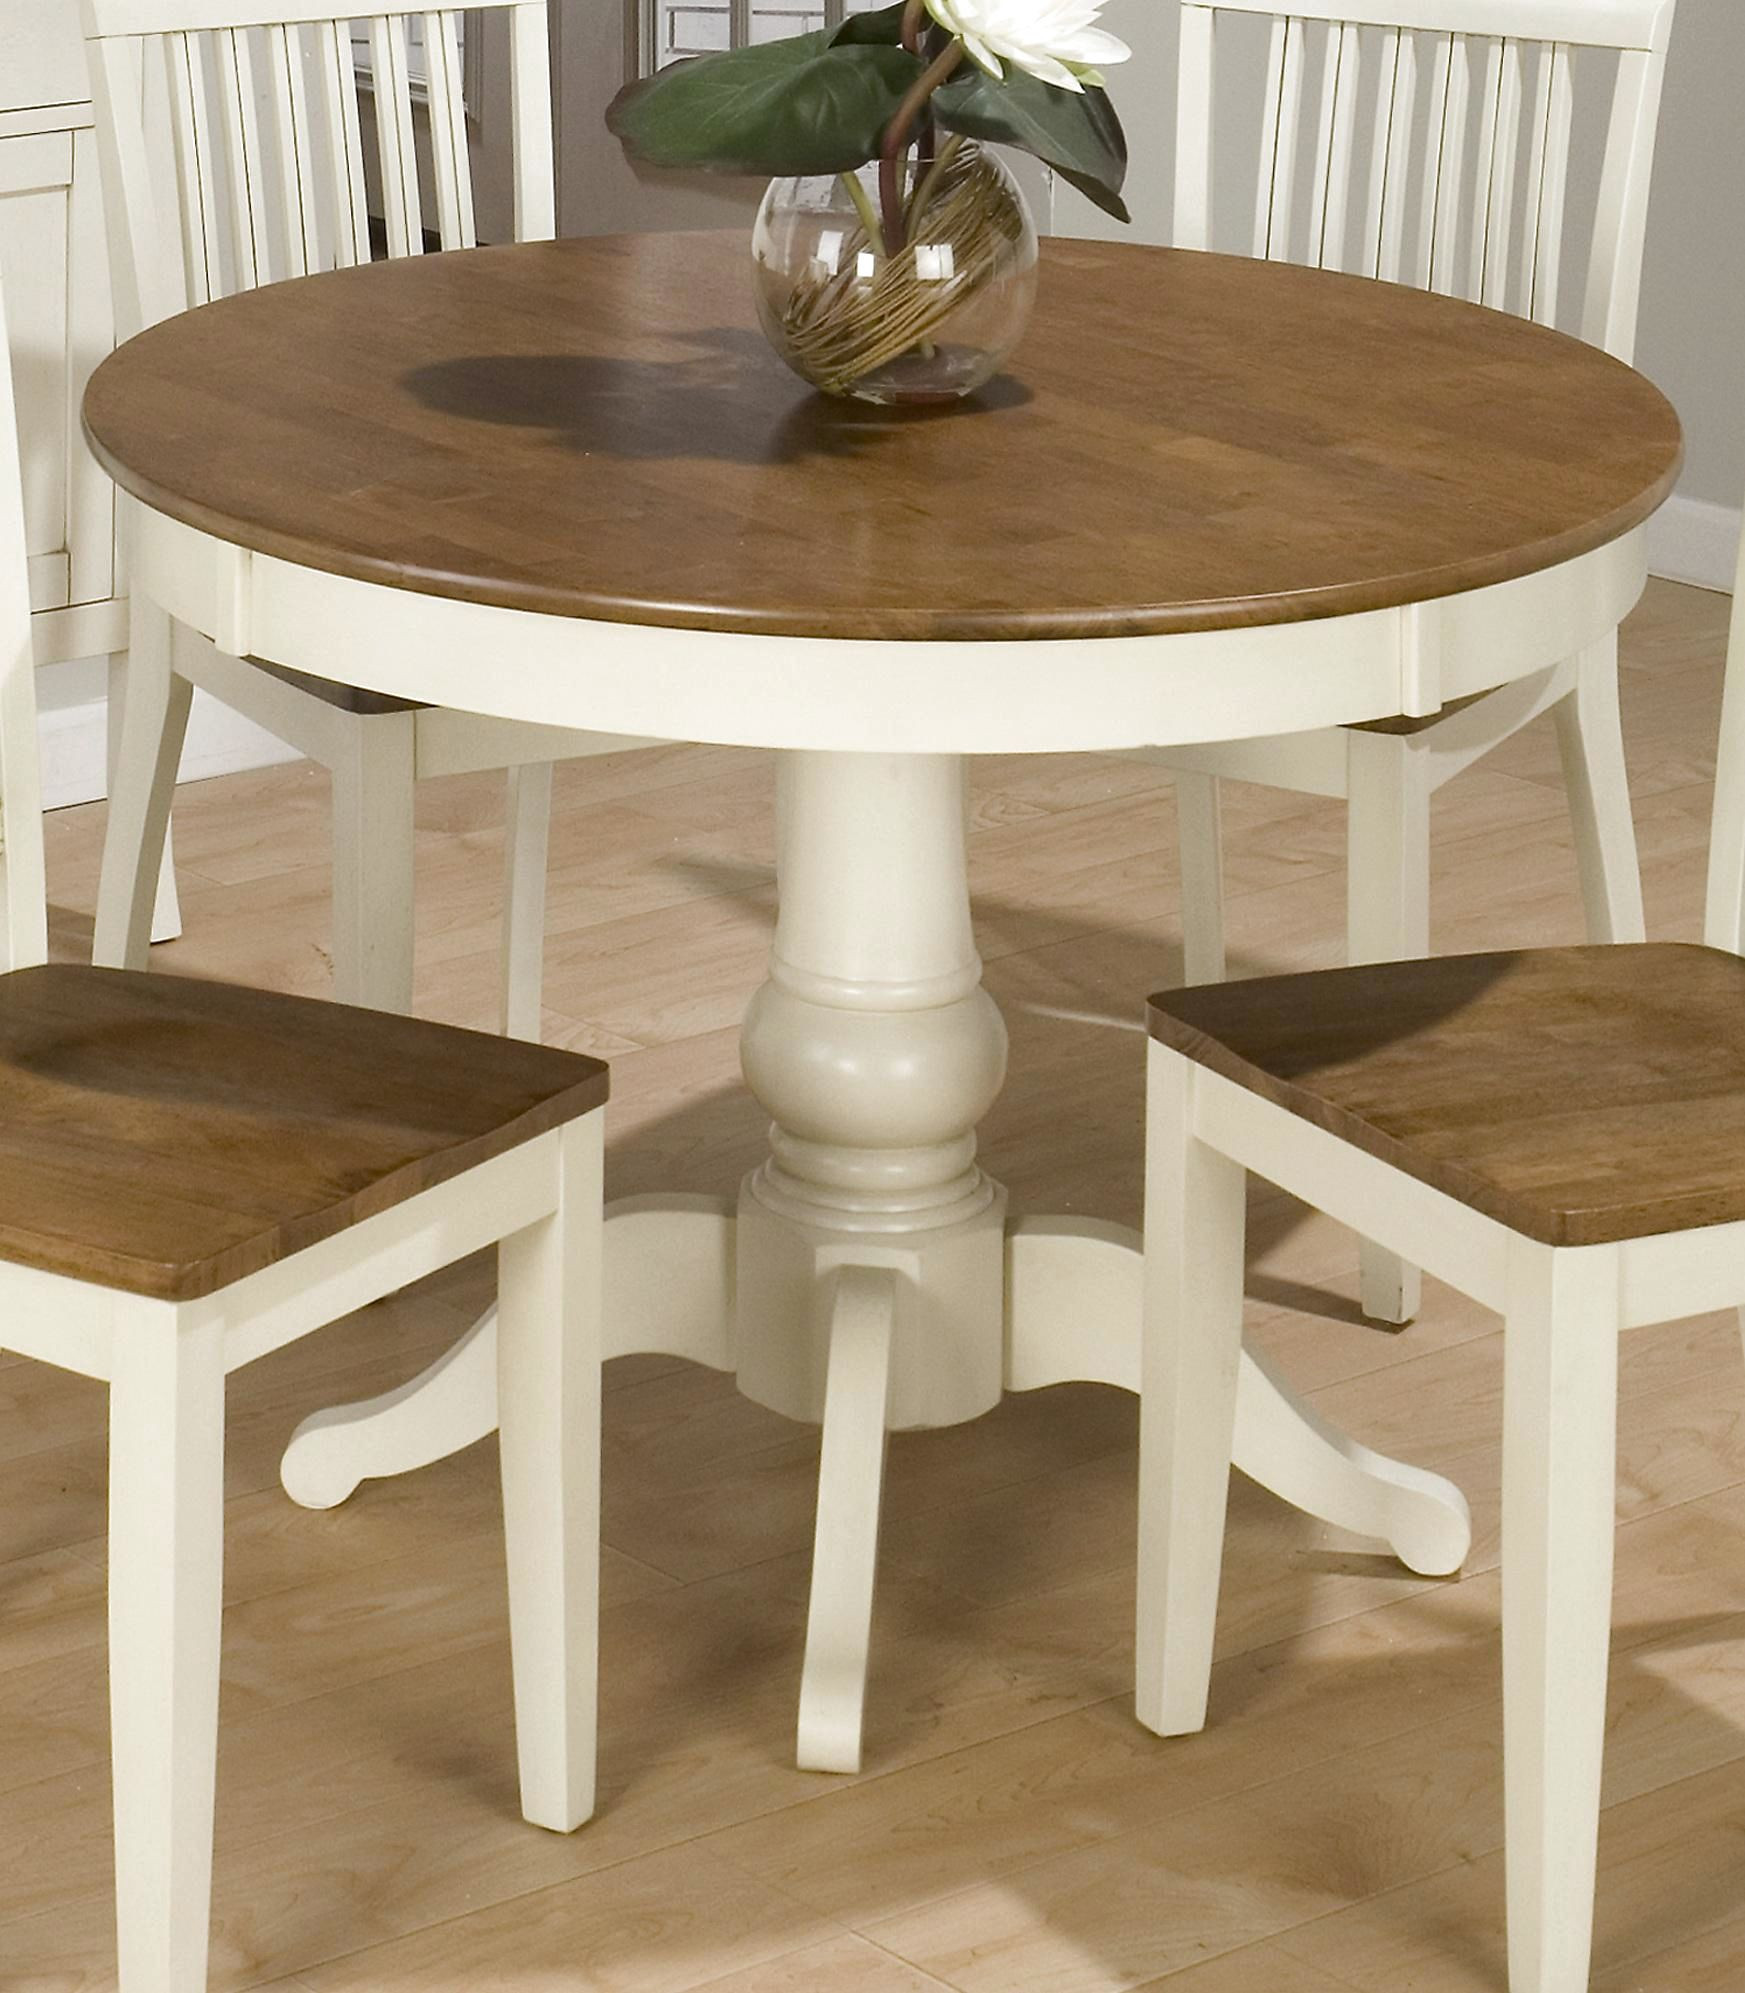 Best ideas about Round Extendable Dining Table . Save or Pin Small Round Extendable Dining Table Sneakergreet Seats Now.